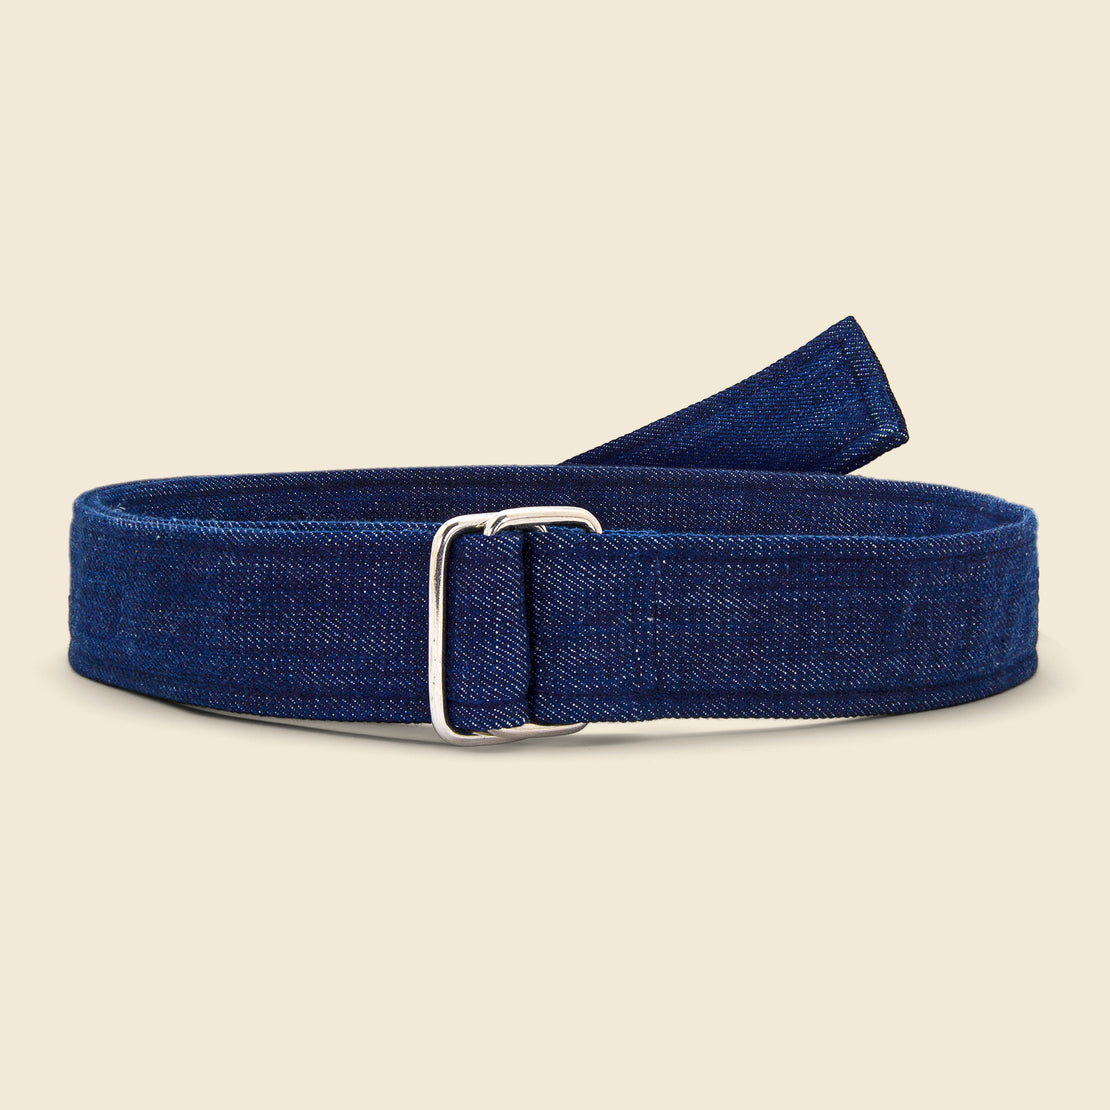 Kardo Denim Belt - Indigo